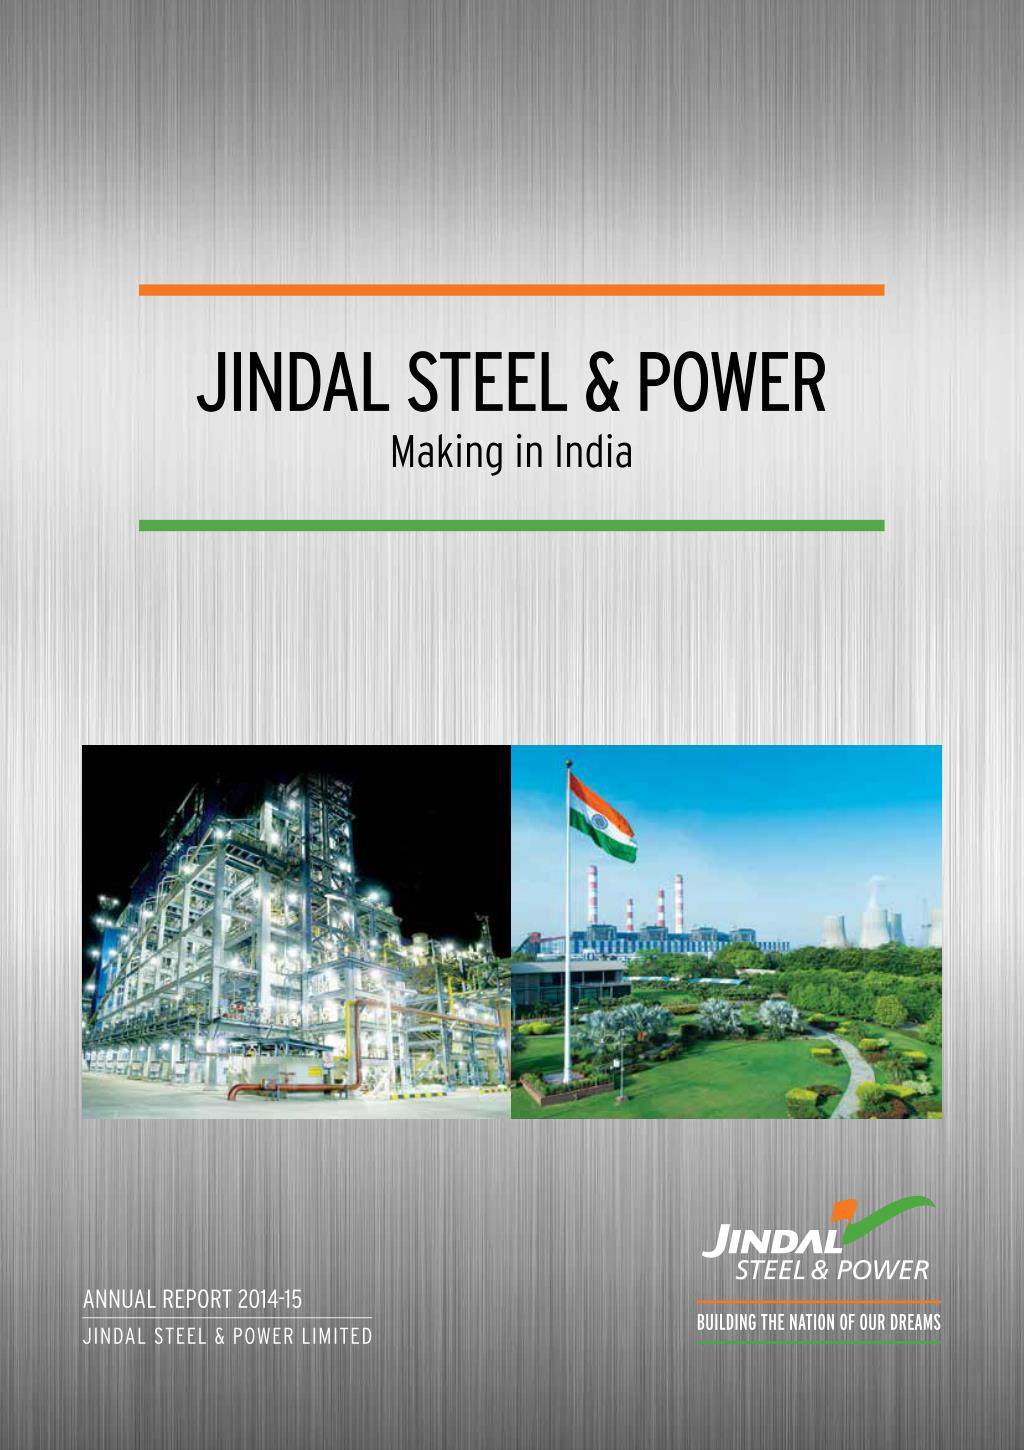 Ppt Jindal Power Steel Make In India Powerpoint Presentation Id Null Practical Electrical Wiring Residential Farm Commercial And Id7488070